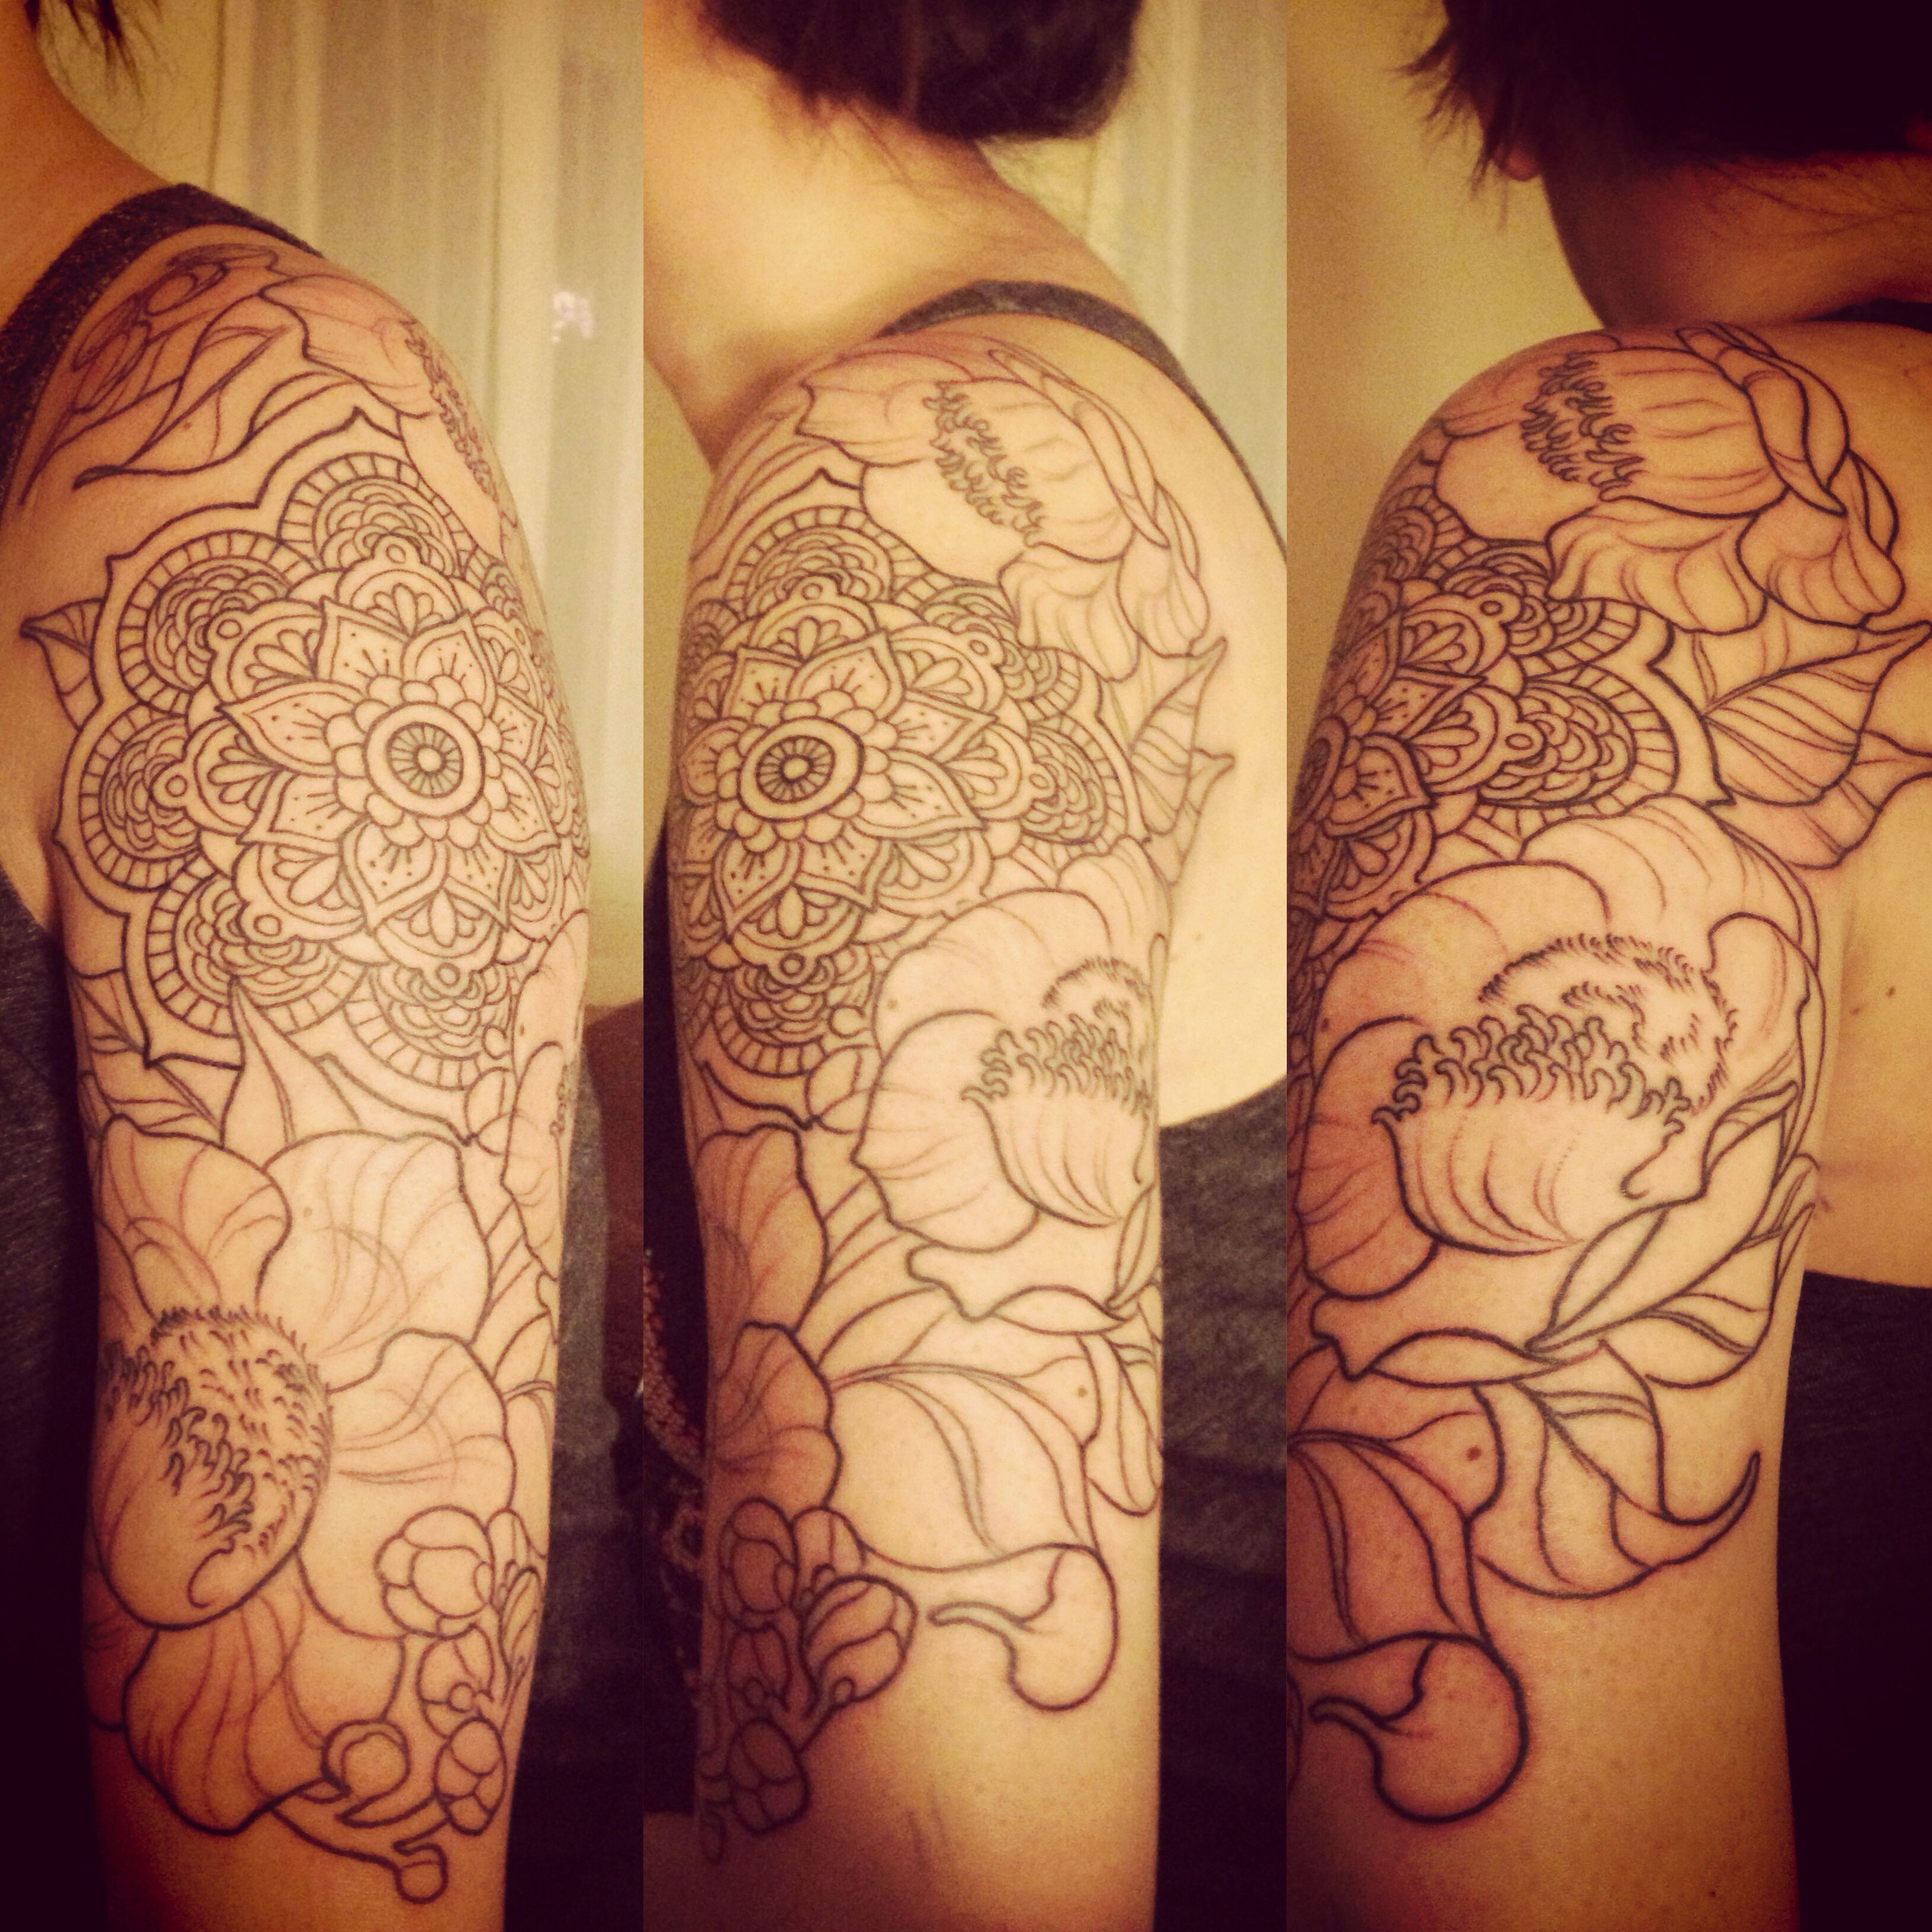 Flower Tree Tattoo: Mandala With Bodhi Leaves And Sal (cannonball) Tree